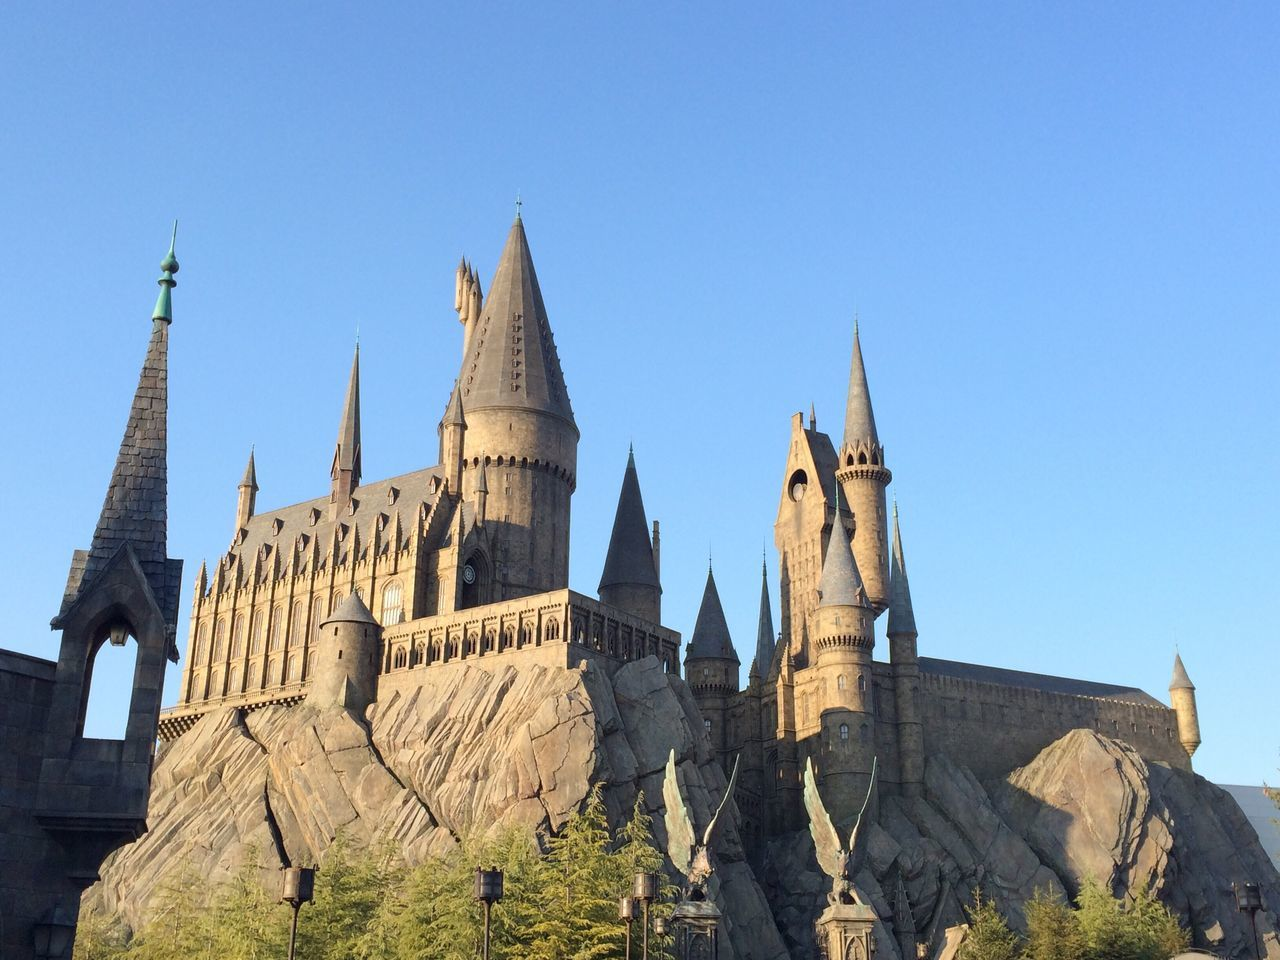 USJ USJ In Osaka Harrypotter Harry Potter Harry Potter ❤ Harry Potter ⚡ Castle ハリーポッター Evening Evening Sky 夕暮れ